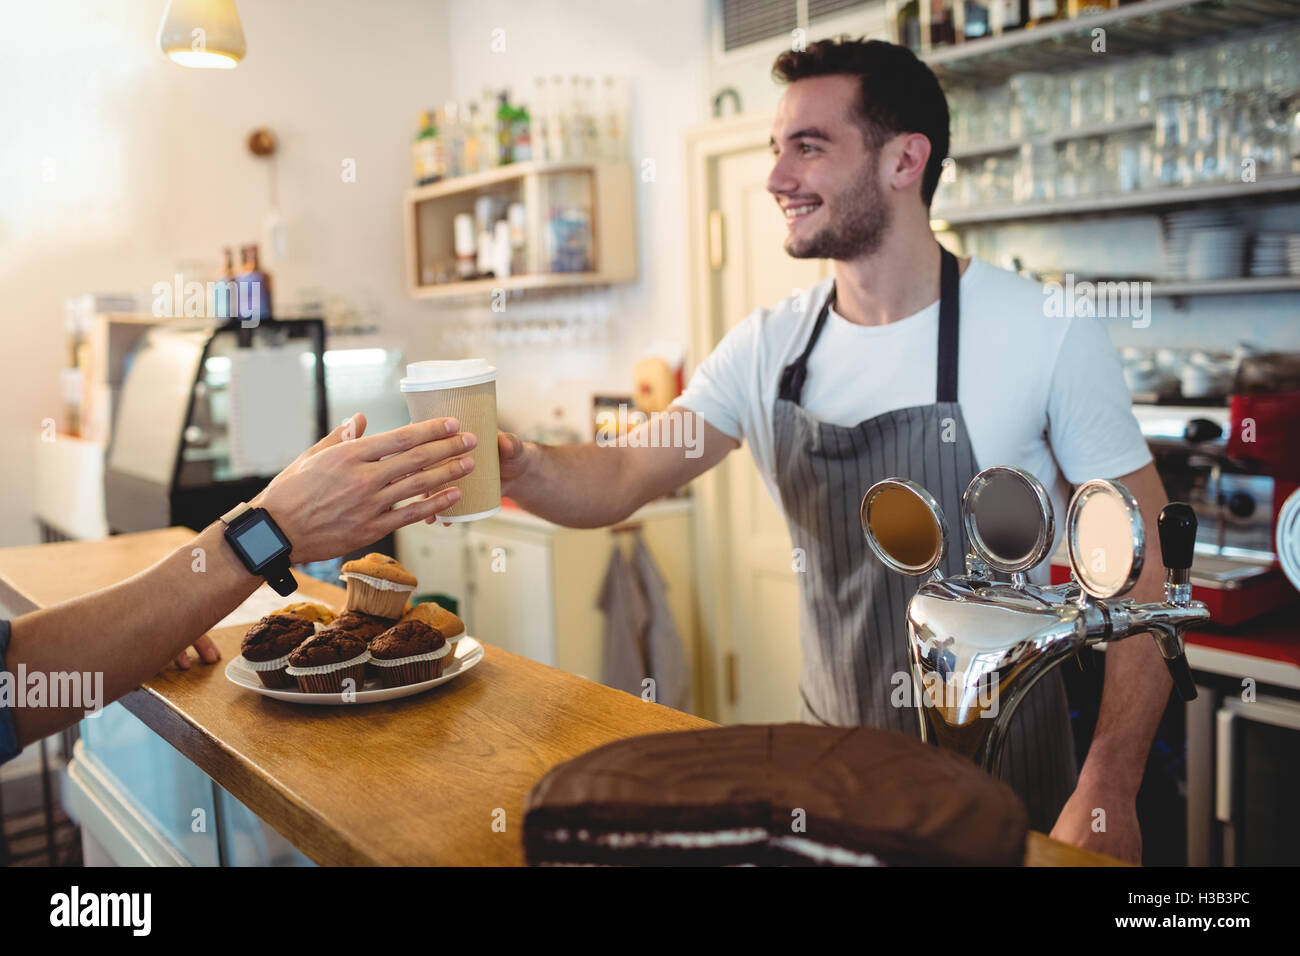 Happy barista serving coffee to customer at cafe - Stock Image